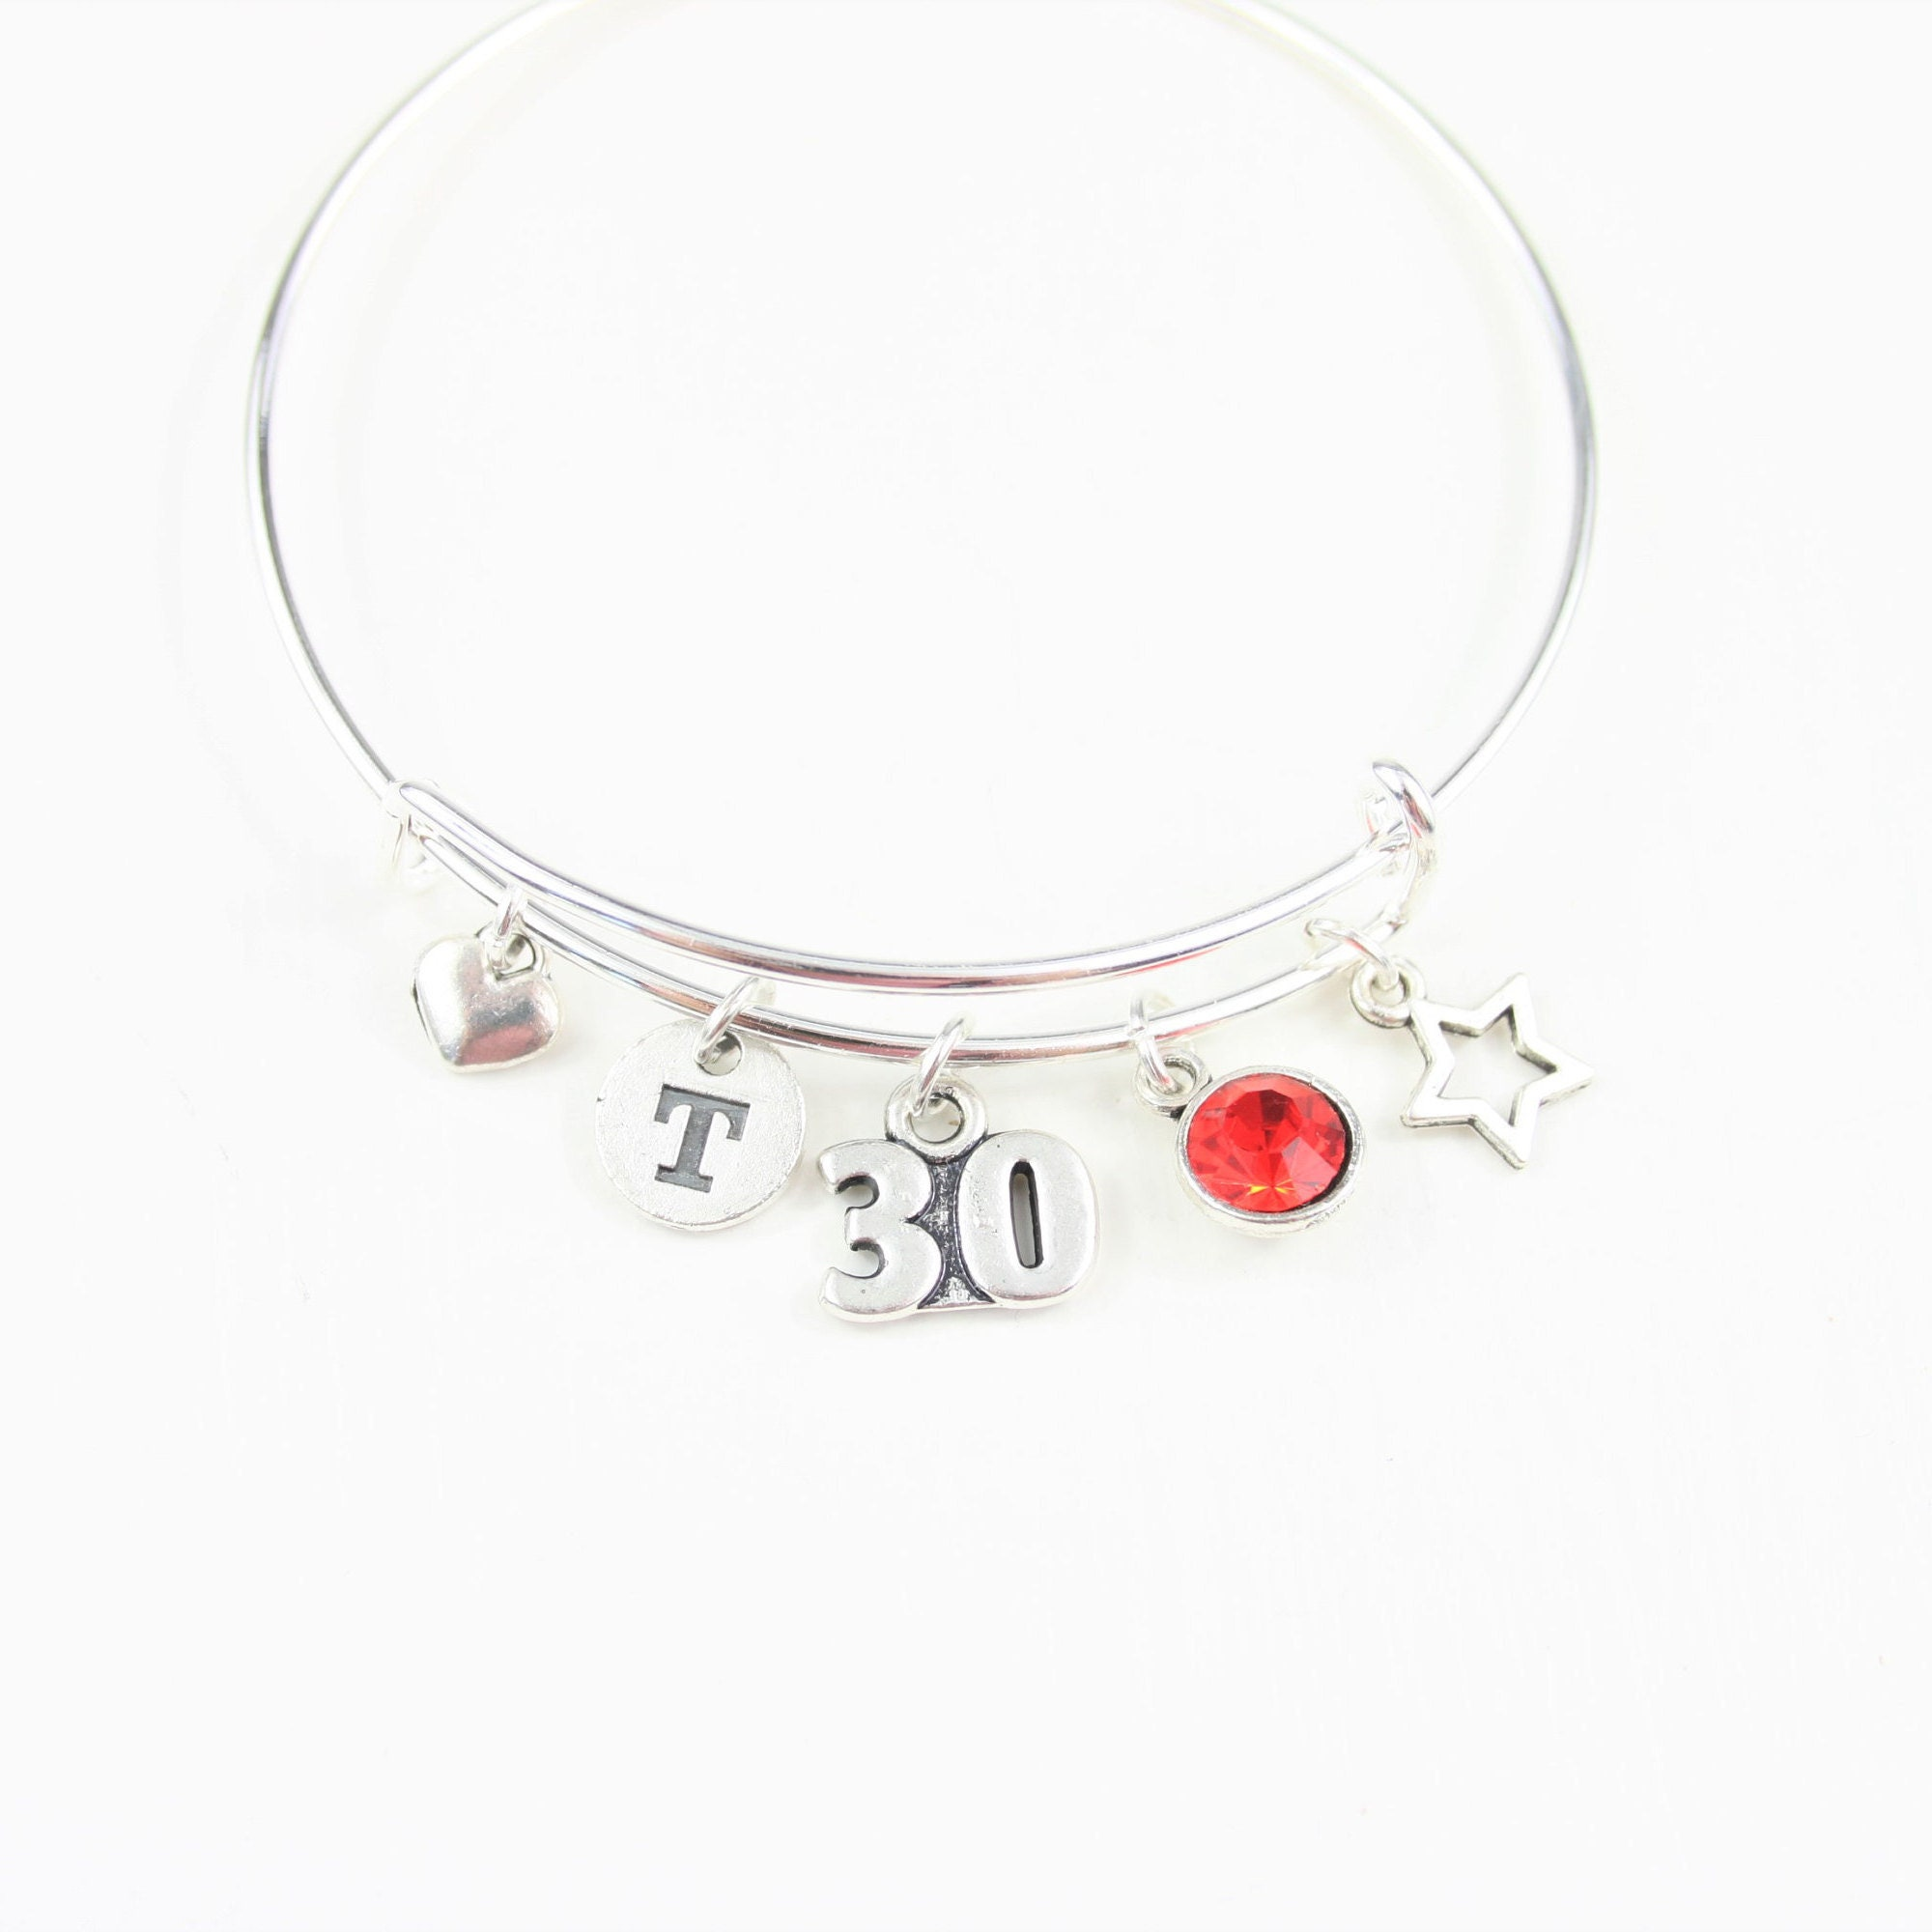 30th Birthday Gift For Her Gifts Woman Dirty 30 Big Sister Friend Daughter Anniversary